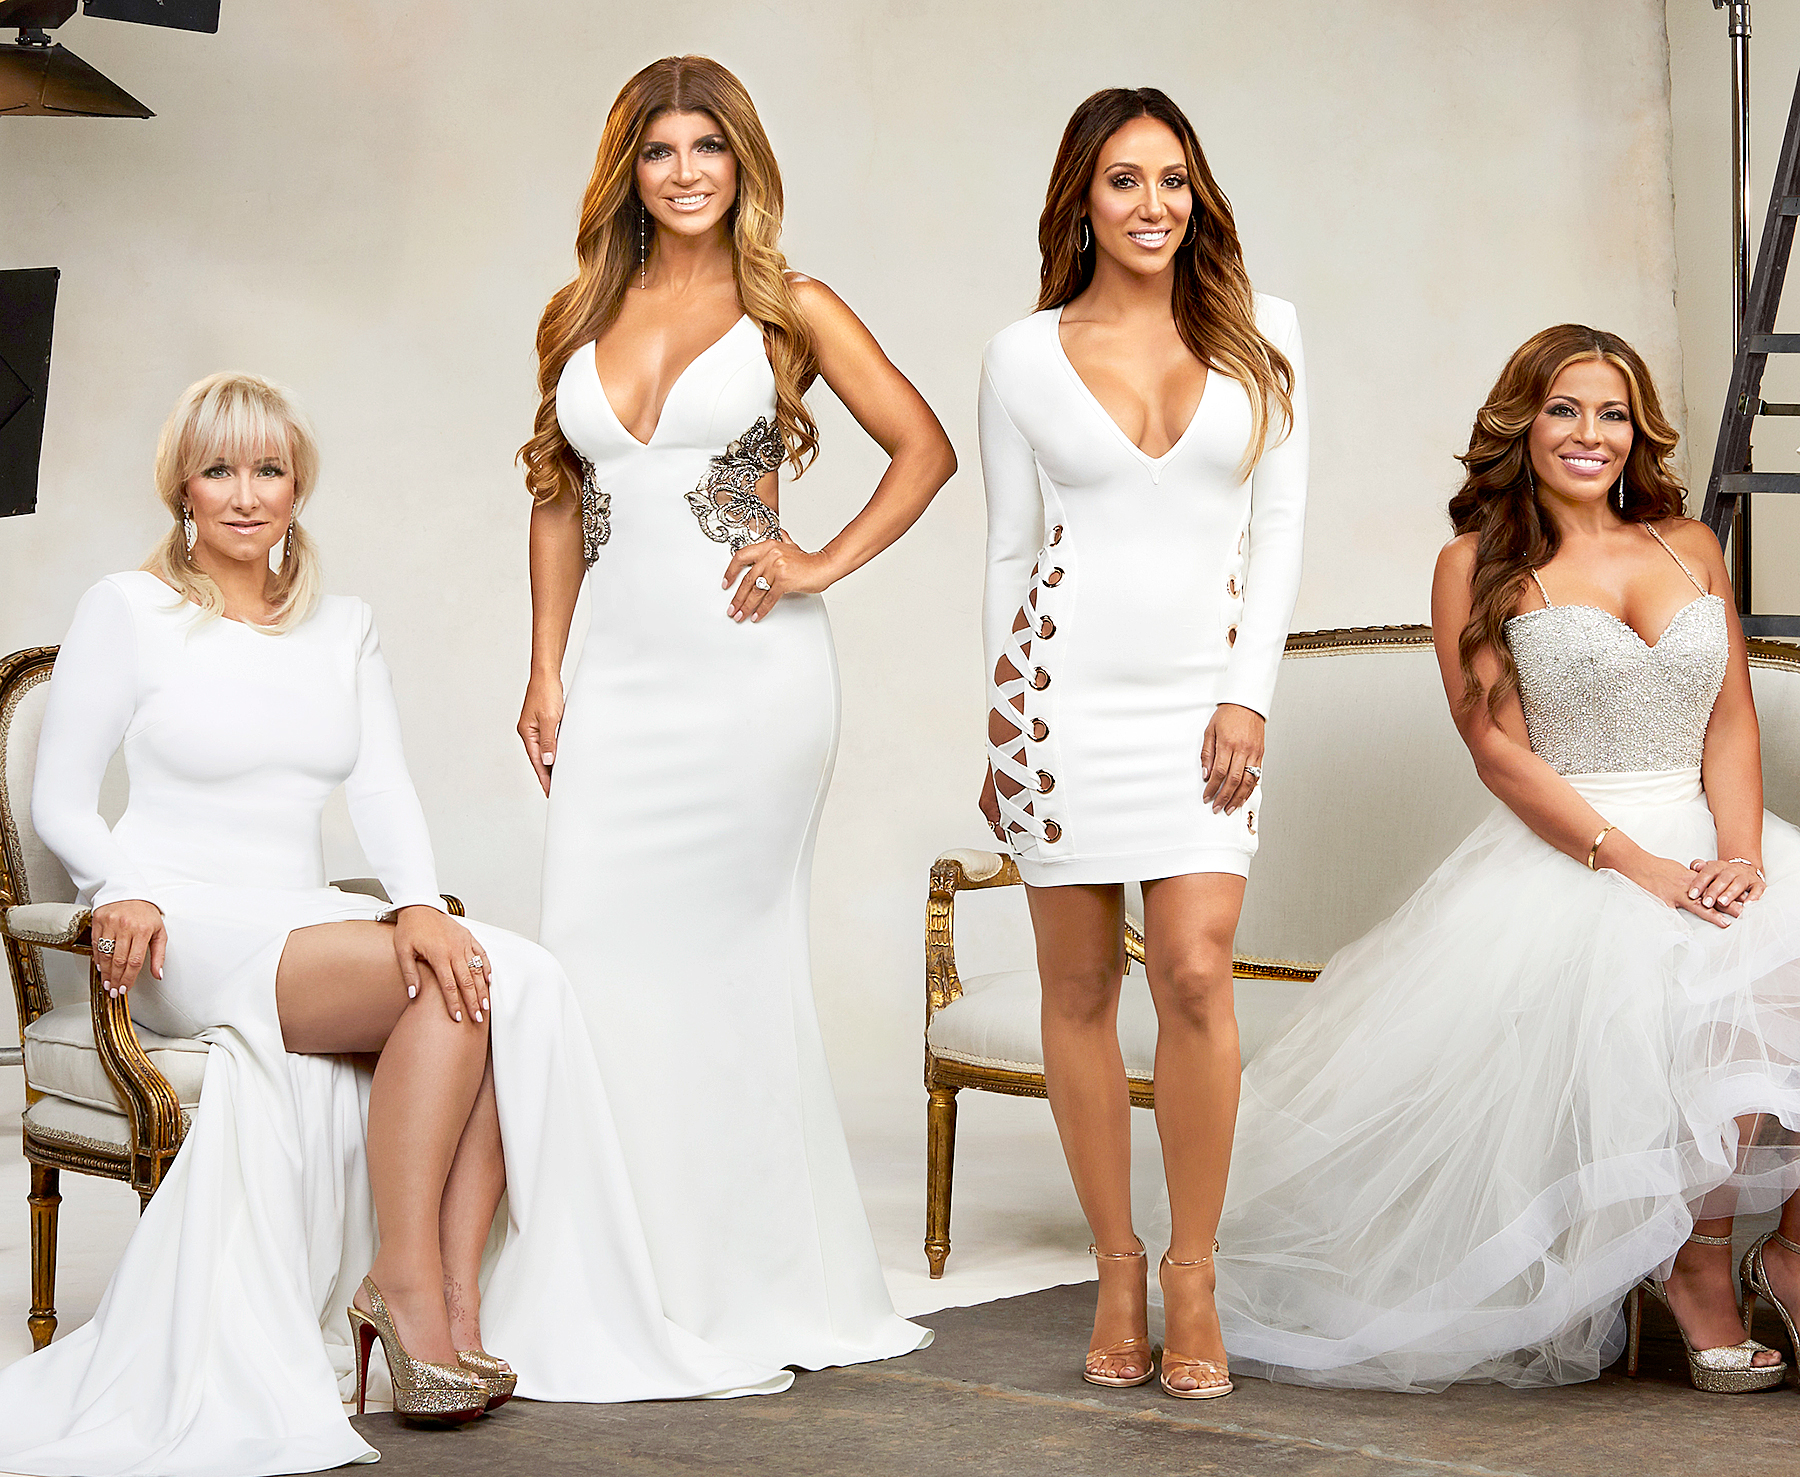 real-housewives-of-new-jersey - Margaret Josephs, Teresa Giudice, Melissa Gorga, Dolores Catania